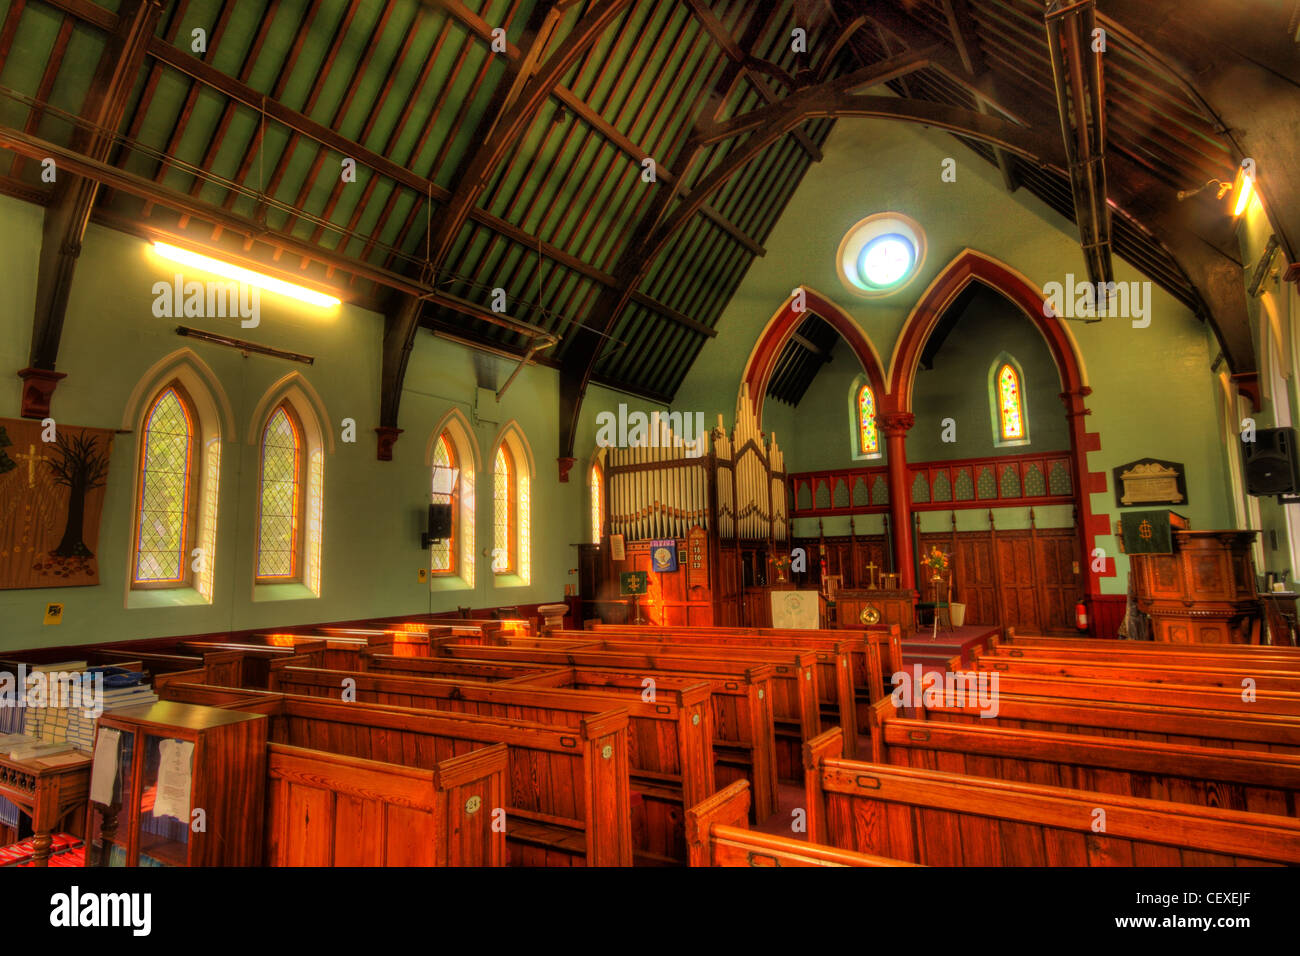 Interior of the Lymm United Reformed Church,Brookfield Road and Davies Way,Warrington,Cheshire,WA13,0QW,URC,inside,typical,example,bare,spartan,wooden,benches,English,UK,British,gotonysmith,Buy Pictures of,Buy Images Of,Lymm,URC,was,built,in,1863,situated,on,the,banks,of,the,Bridgewater,Canal,at,the,heart,of,the,picturesque,village,of,Lymm,in,Cheshire,welcoming,congregation,active,local,community,Sanctuary,Cafe,Christians,in,the,community,heart,outreach,into,the,village,mainstream,Christian,church,Churches,of,Christ,denominations,Evangelical,Alliance,Lymm URC,The United Reformed Church,Evangelical Alliance